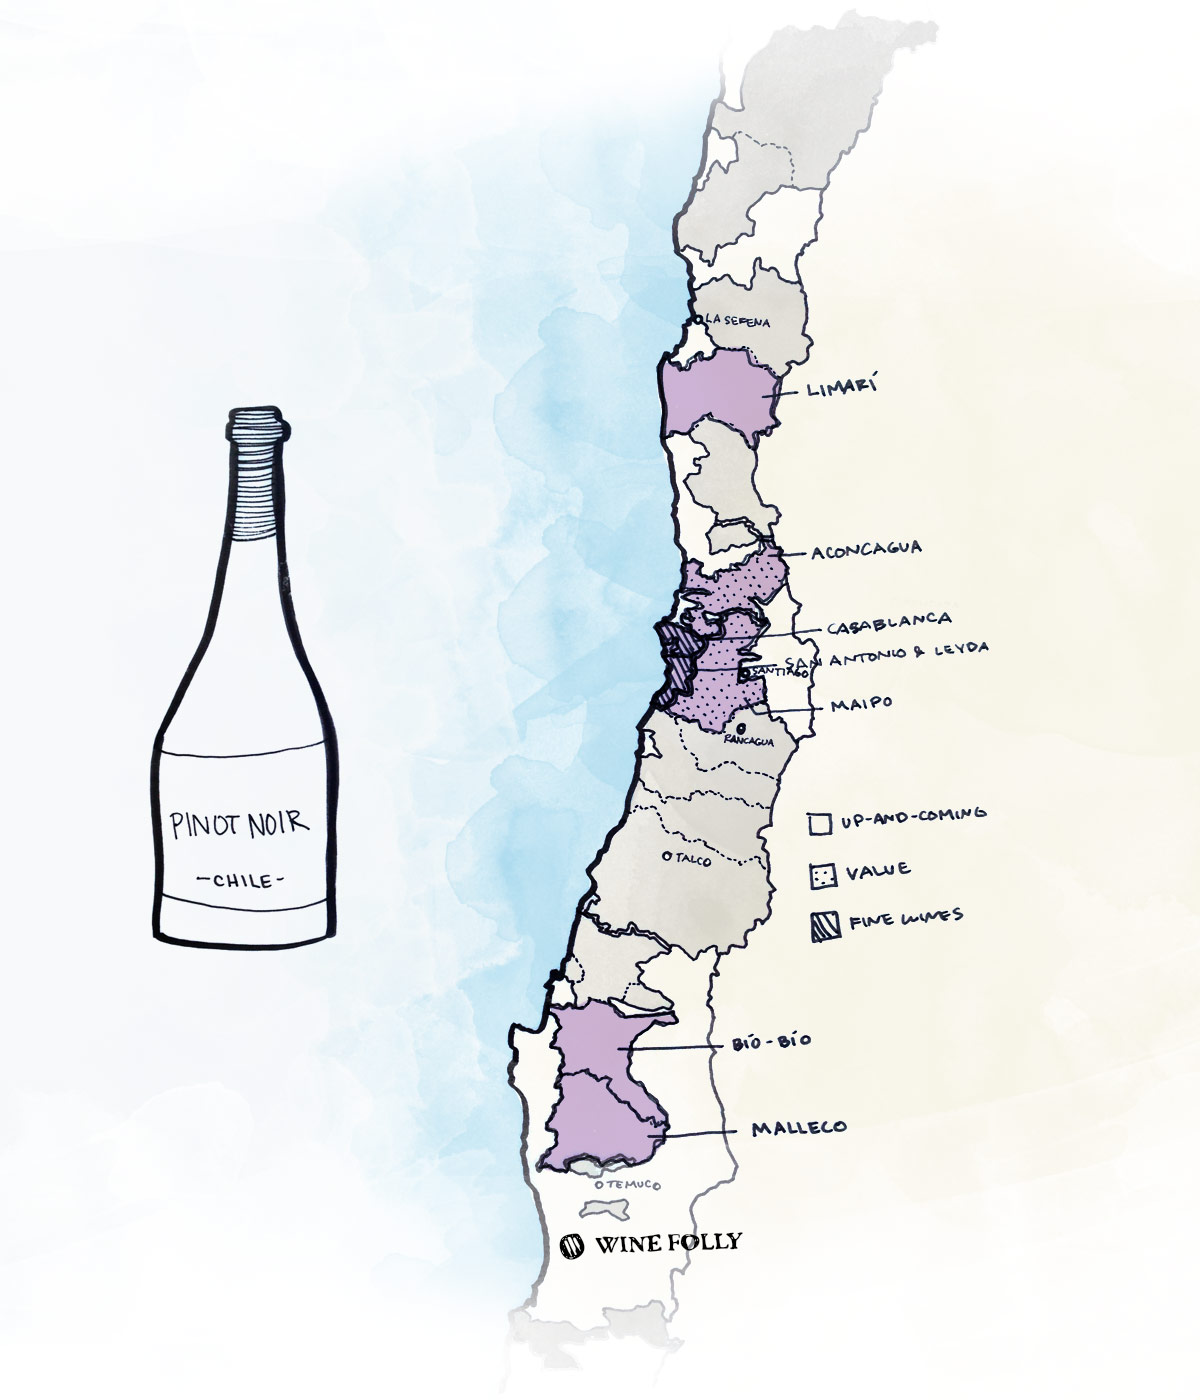 Best wine regions in Chile to look for Pinot Noir